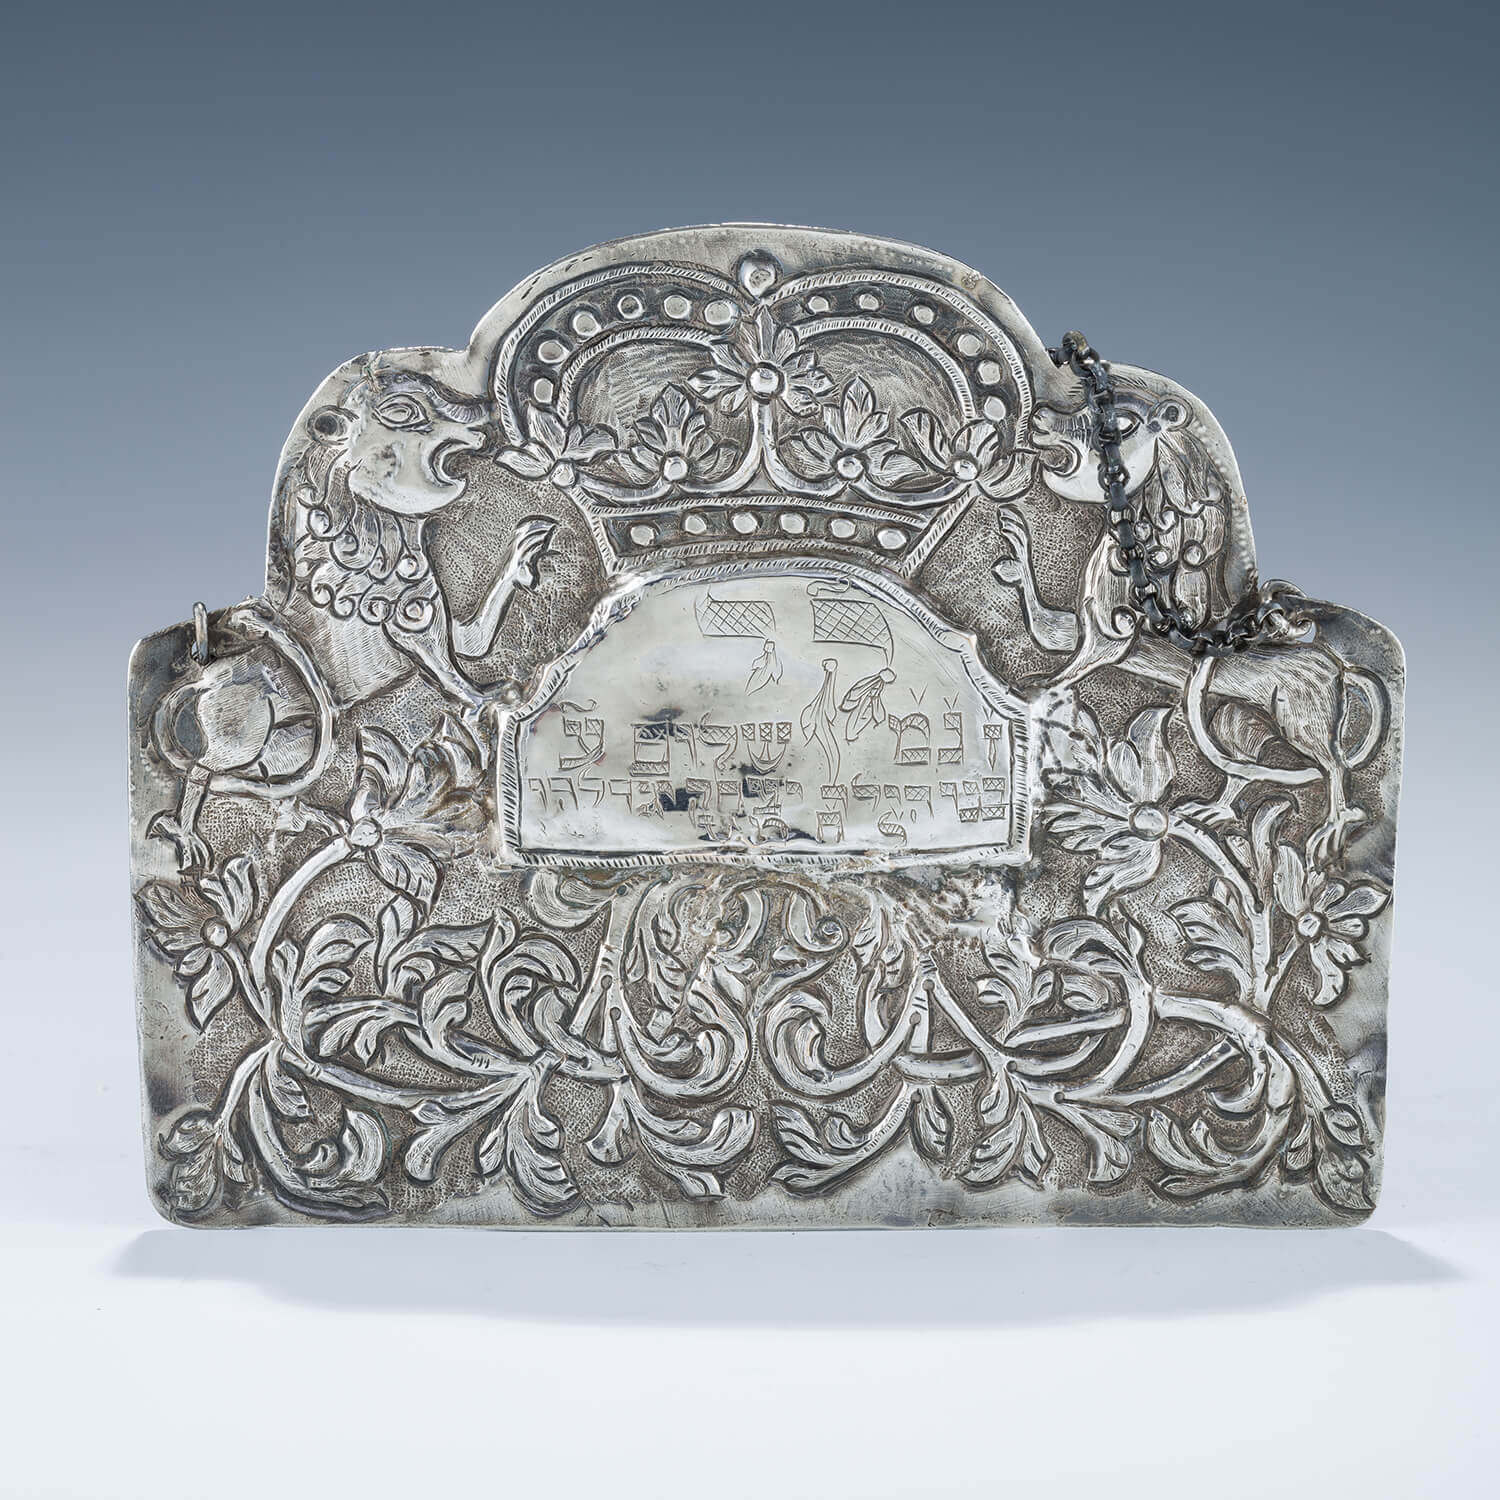 077. AN EARLY SILVER TORAH SHIELD